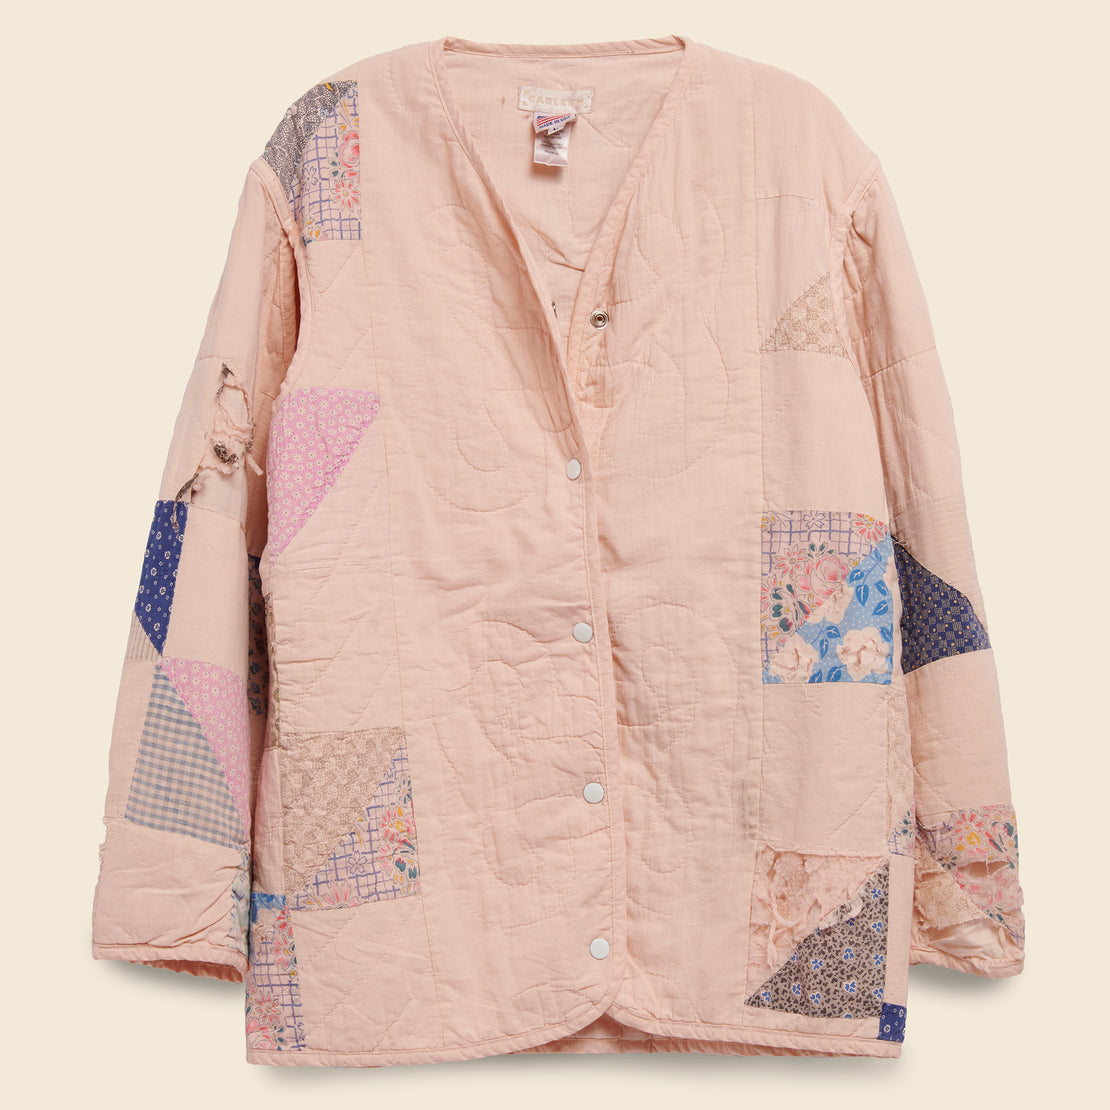 Carleen Quilt Liner Jacket - Pink Overdye, Triangle Sides